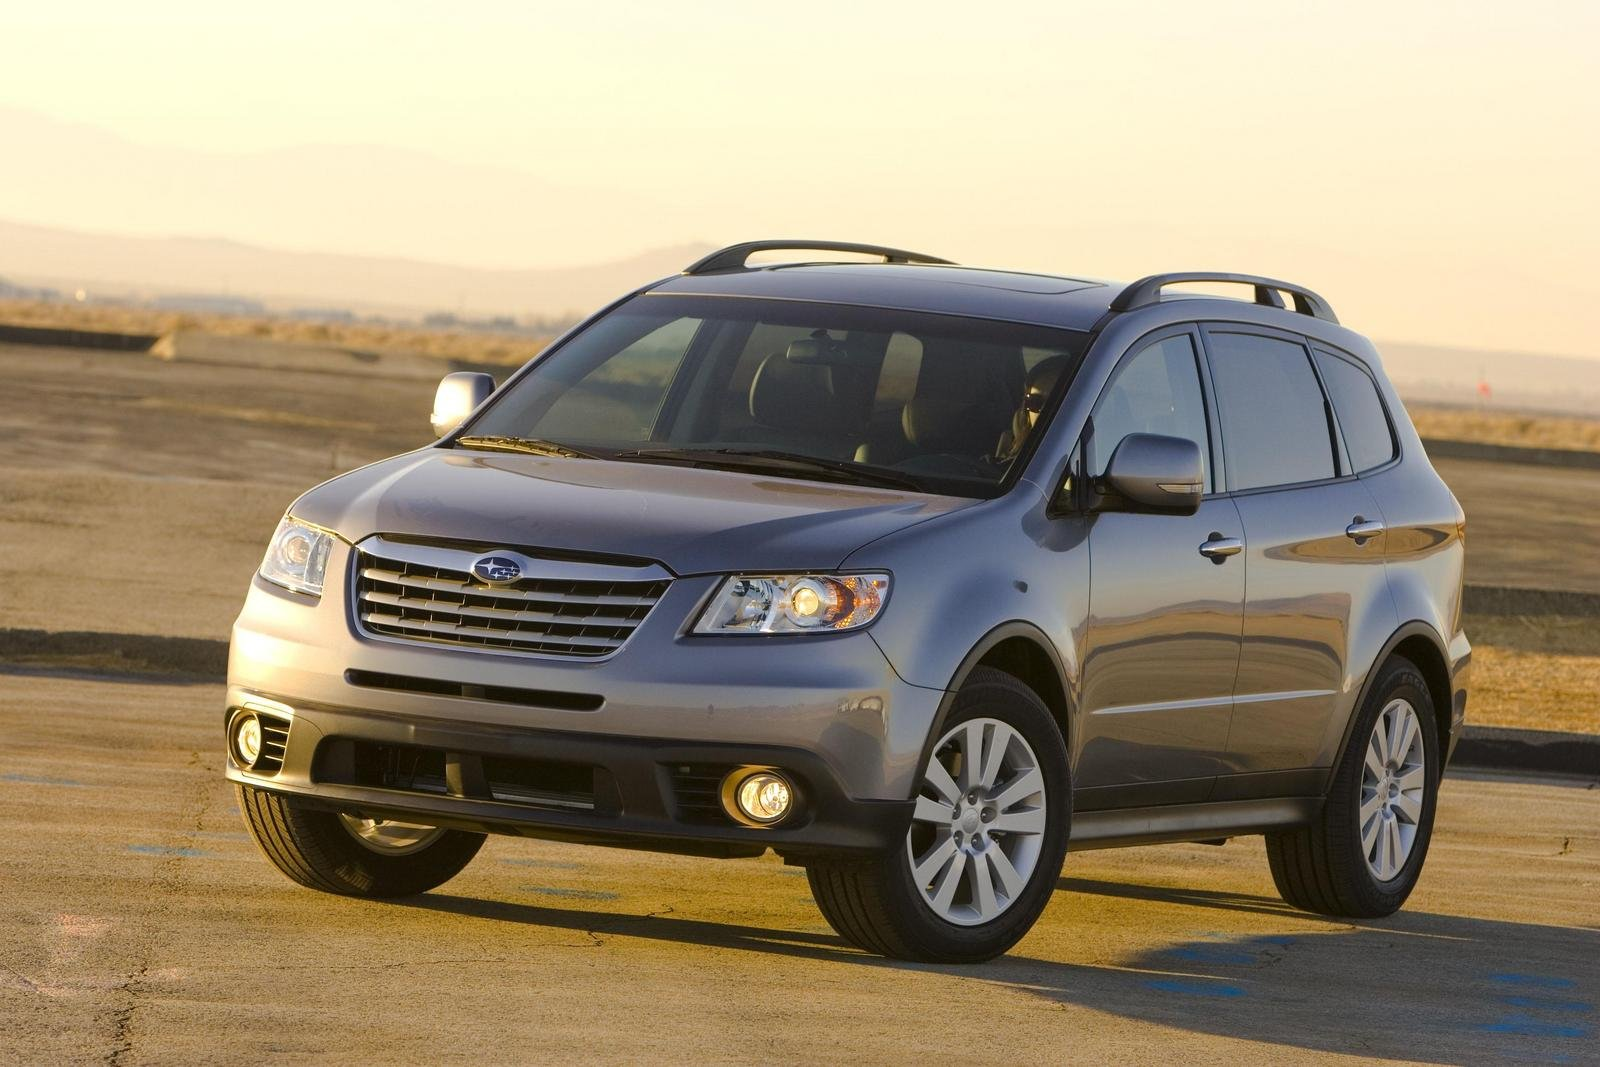 2008 subaru tribeca review top speed. Black Bedroom Furniture Sets. Home Design Ideas